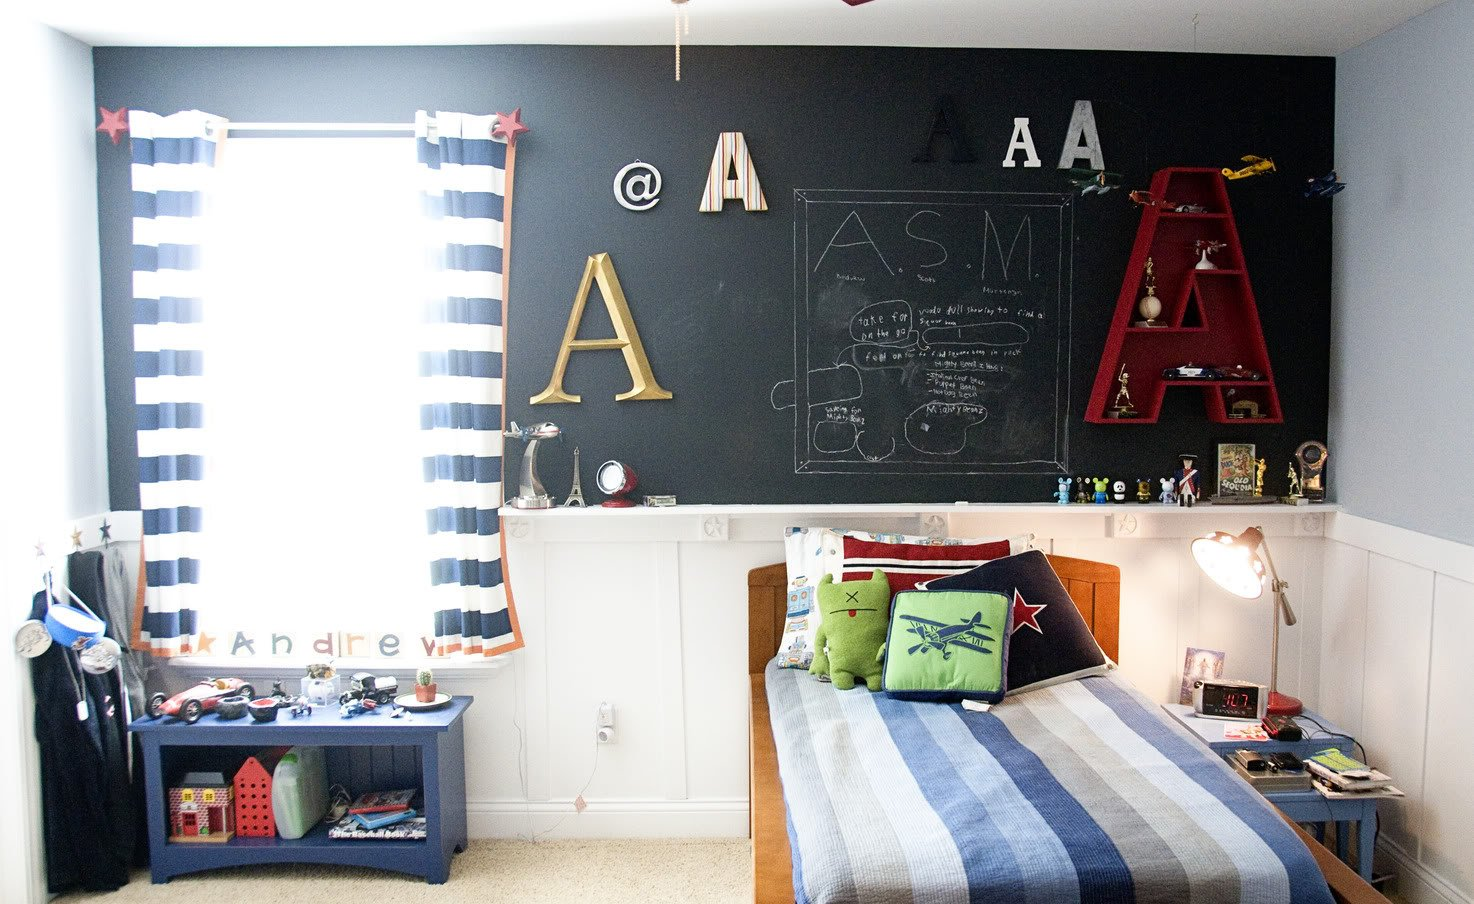 ideas for decorating boys bedroom - Decorating A Boys Room Ideas